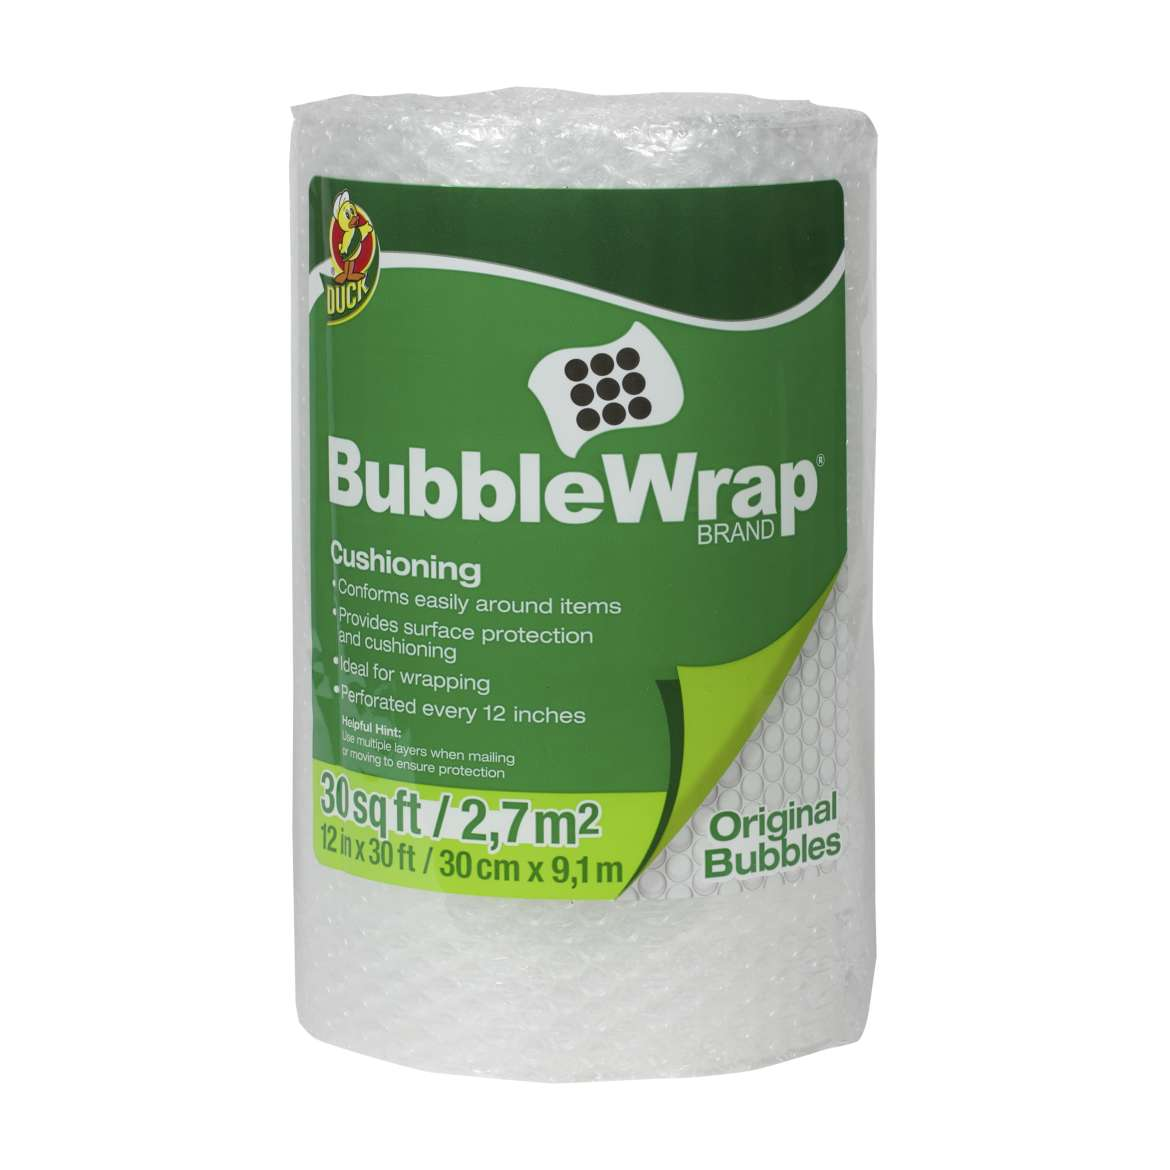 Duck Brand Original Bubble Wrap® Cushioning - Clear, 12 in. x 30 ft.